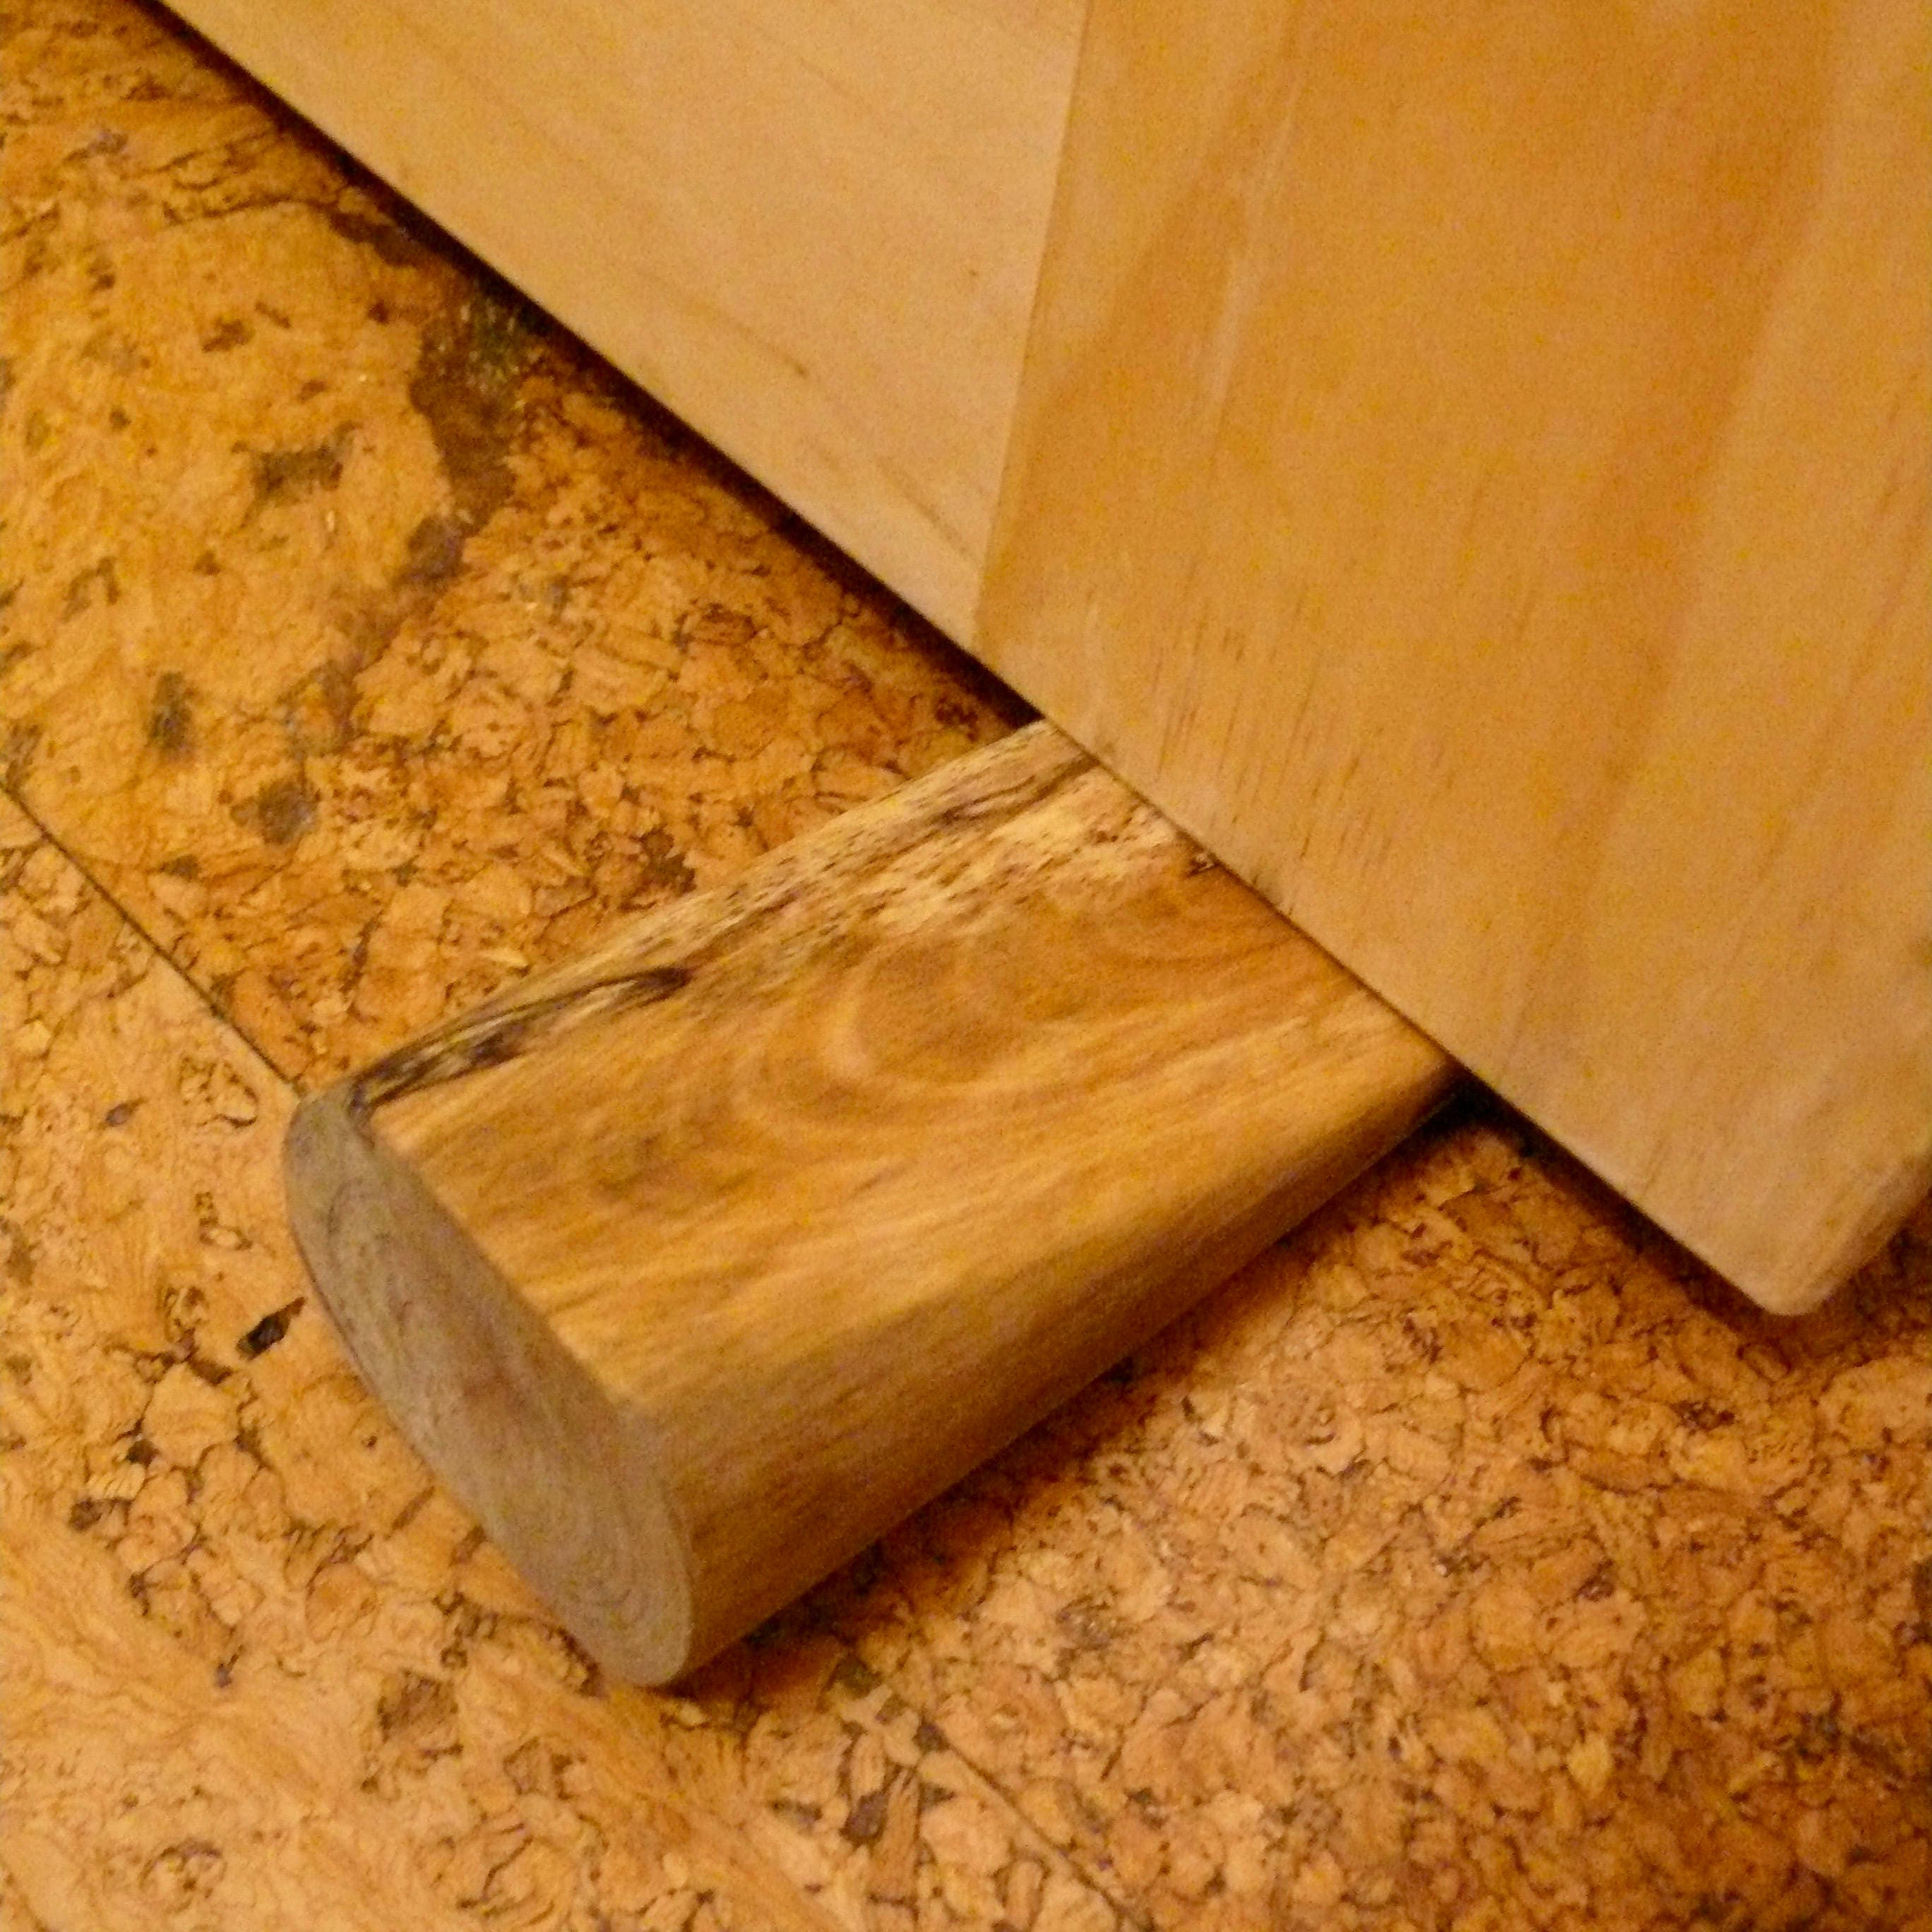 Rustic wooden Door Stop Wooden Door Stopper Door Wedge Door